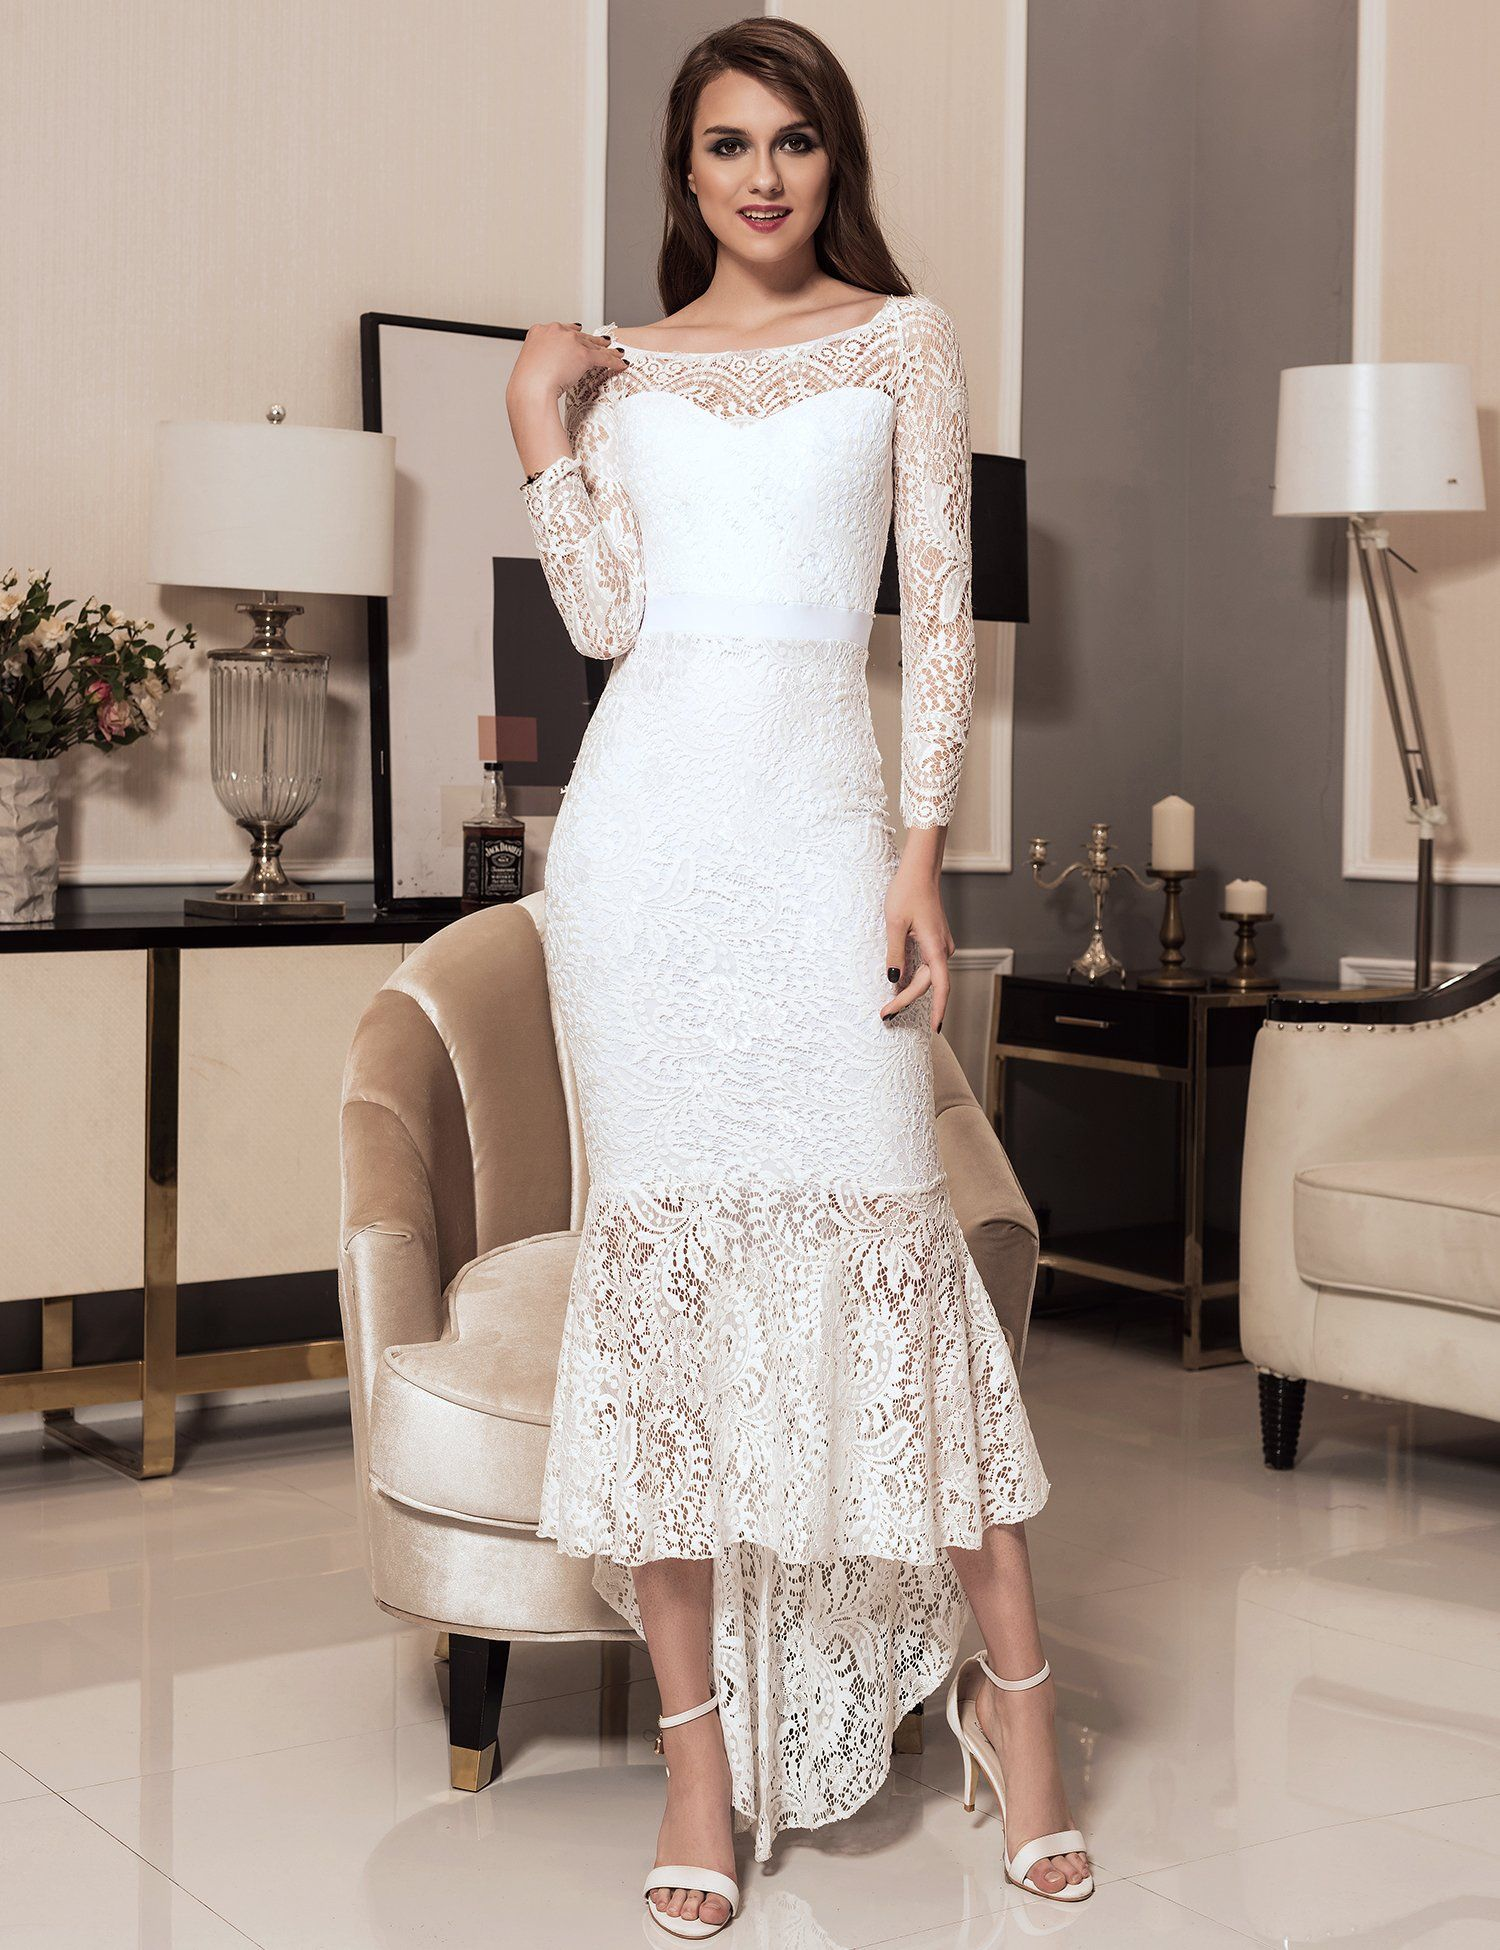 c7771ef72 ohyeah Women Solid Formal Lace Maxi Dress Long Sleeve Off Shoulder Elegant  Party Gown Mermaid Dress -- You can get additional details at the image  link.